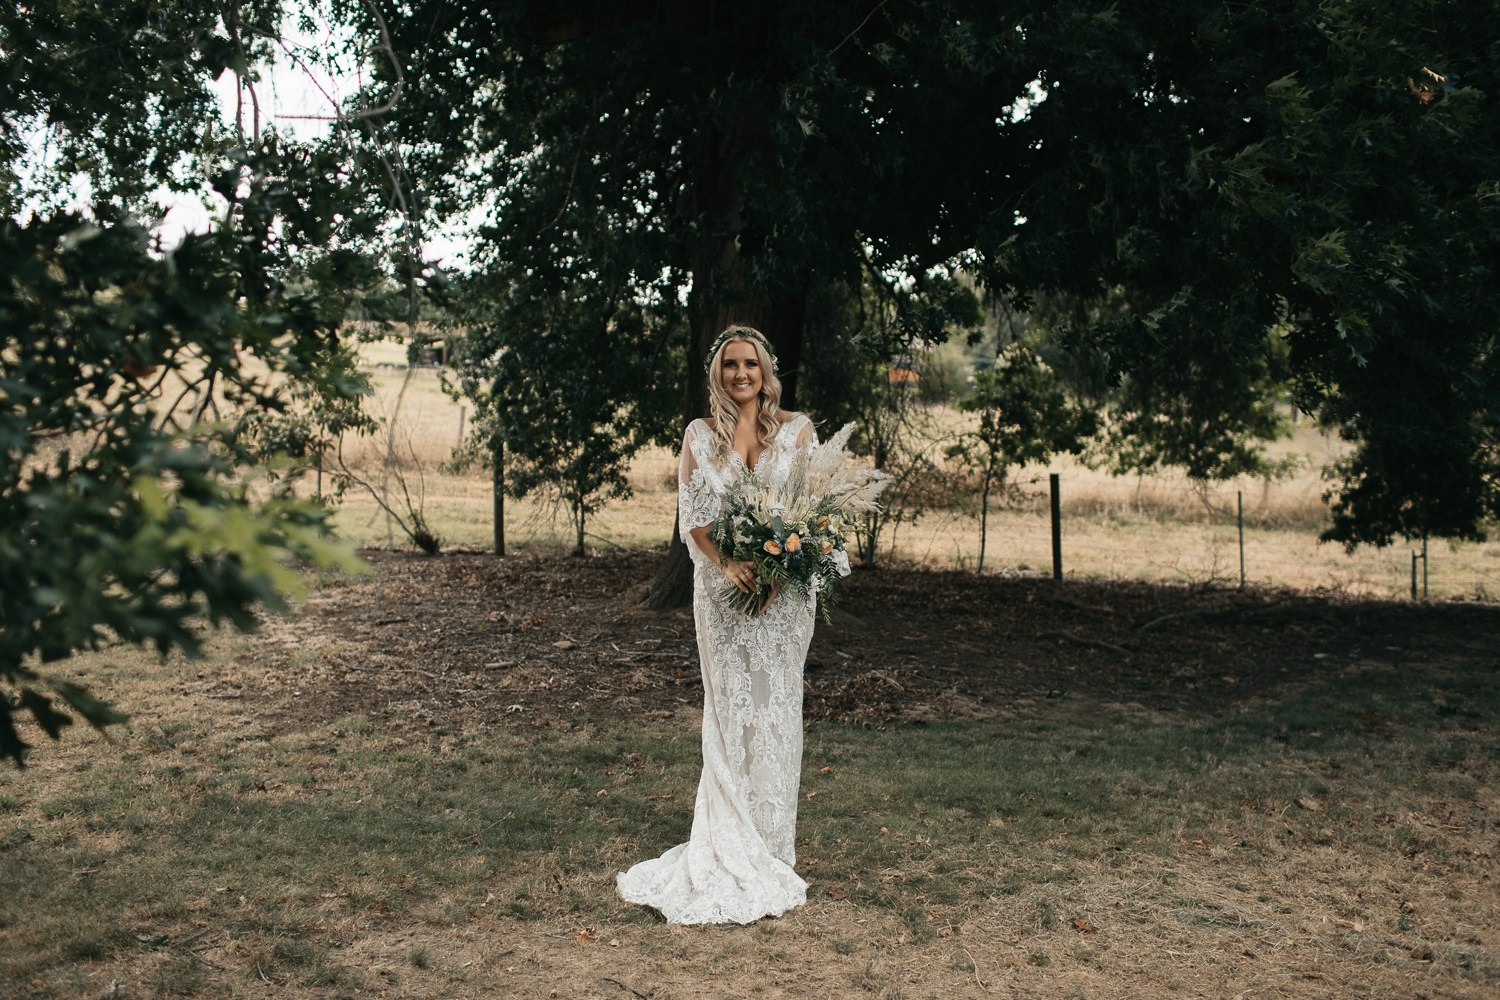 zonzo-estate-yarra-valley-wedding-photographer_0035.jpg